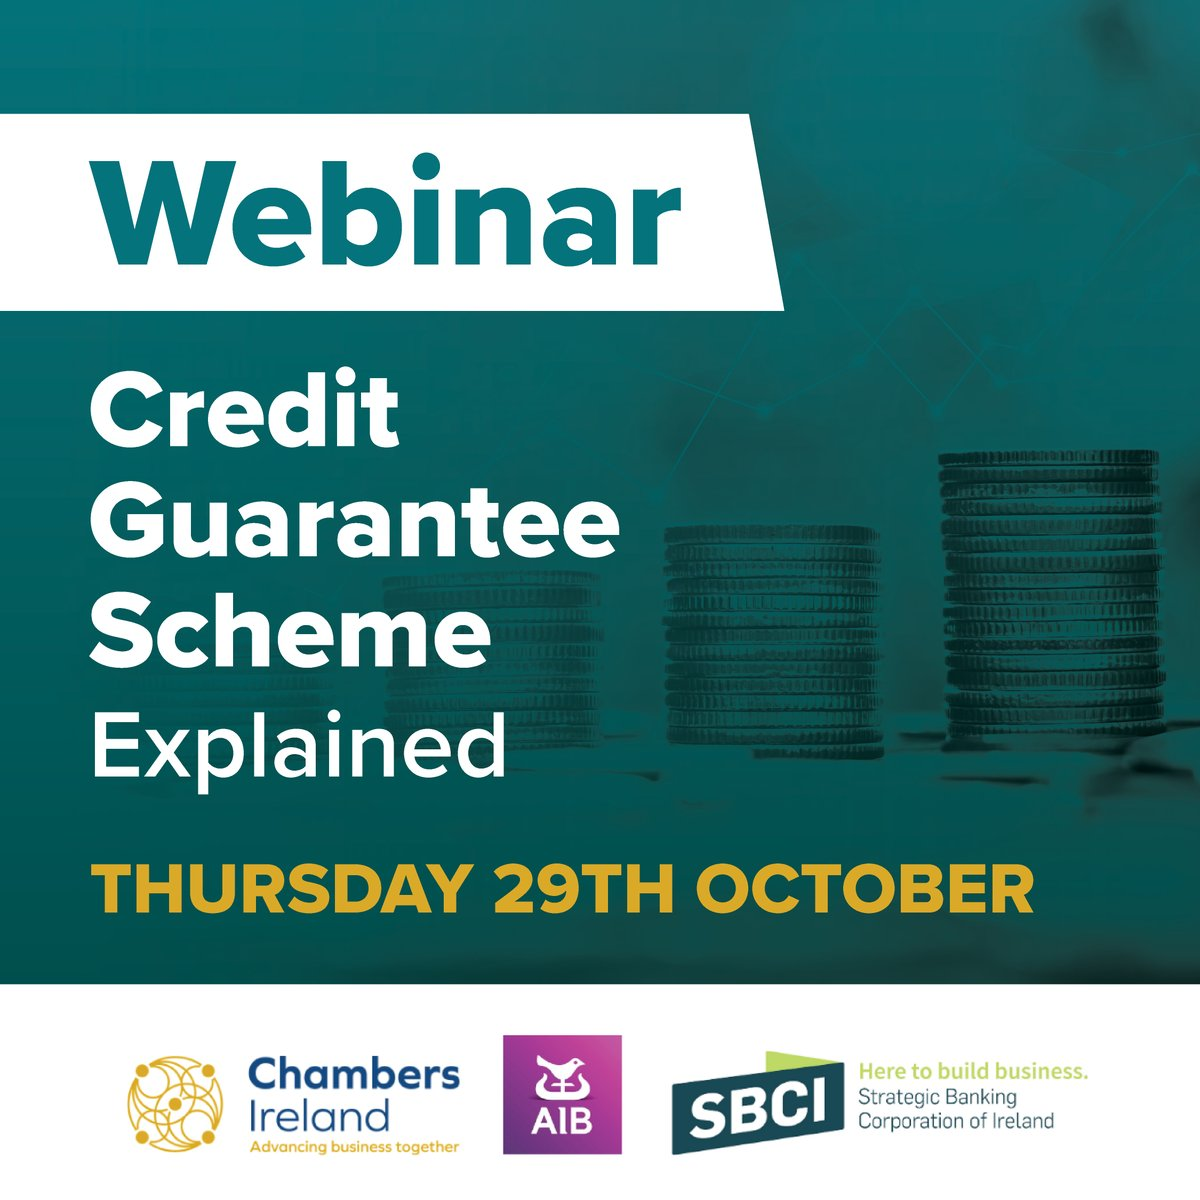 Chambers Ireland in partnership with AIB brings Chamber members an update on key government and financial supports available to businesses, with a particular focus on the Credit Guarantee Scheme.   Time: 11:00 – 12:00 Registration (Members Only): https://t.co/OYriApuTZA https://t.co/97qkkND7fO